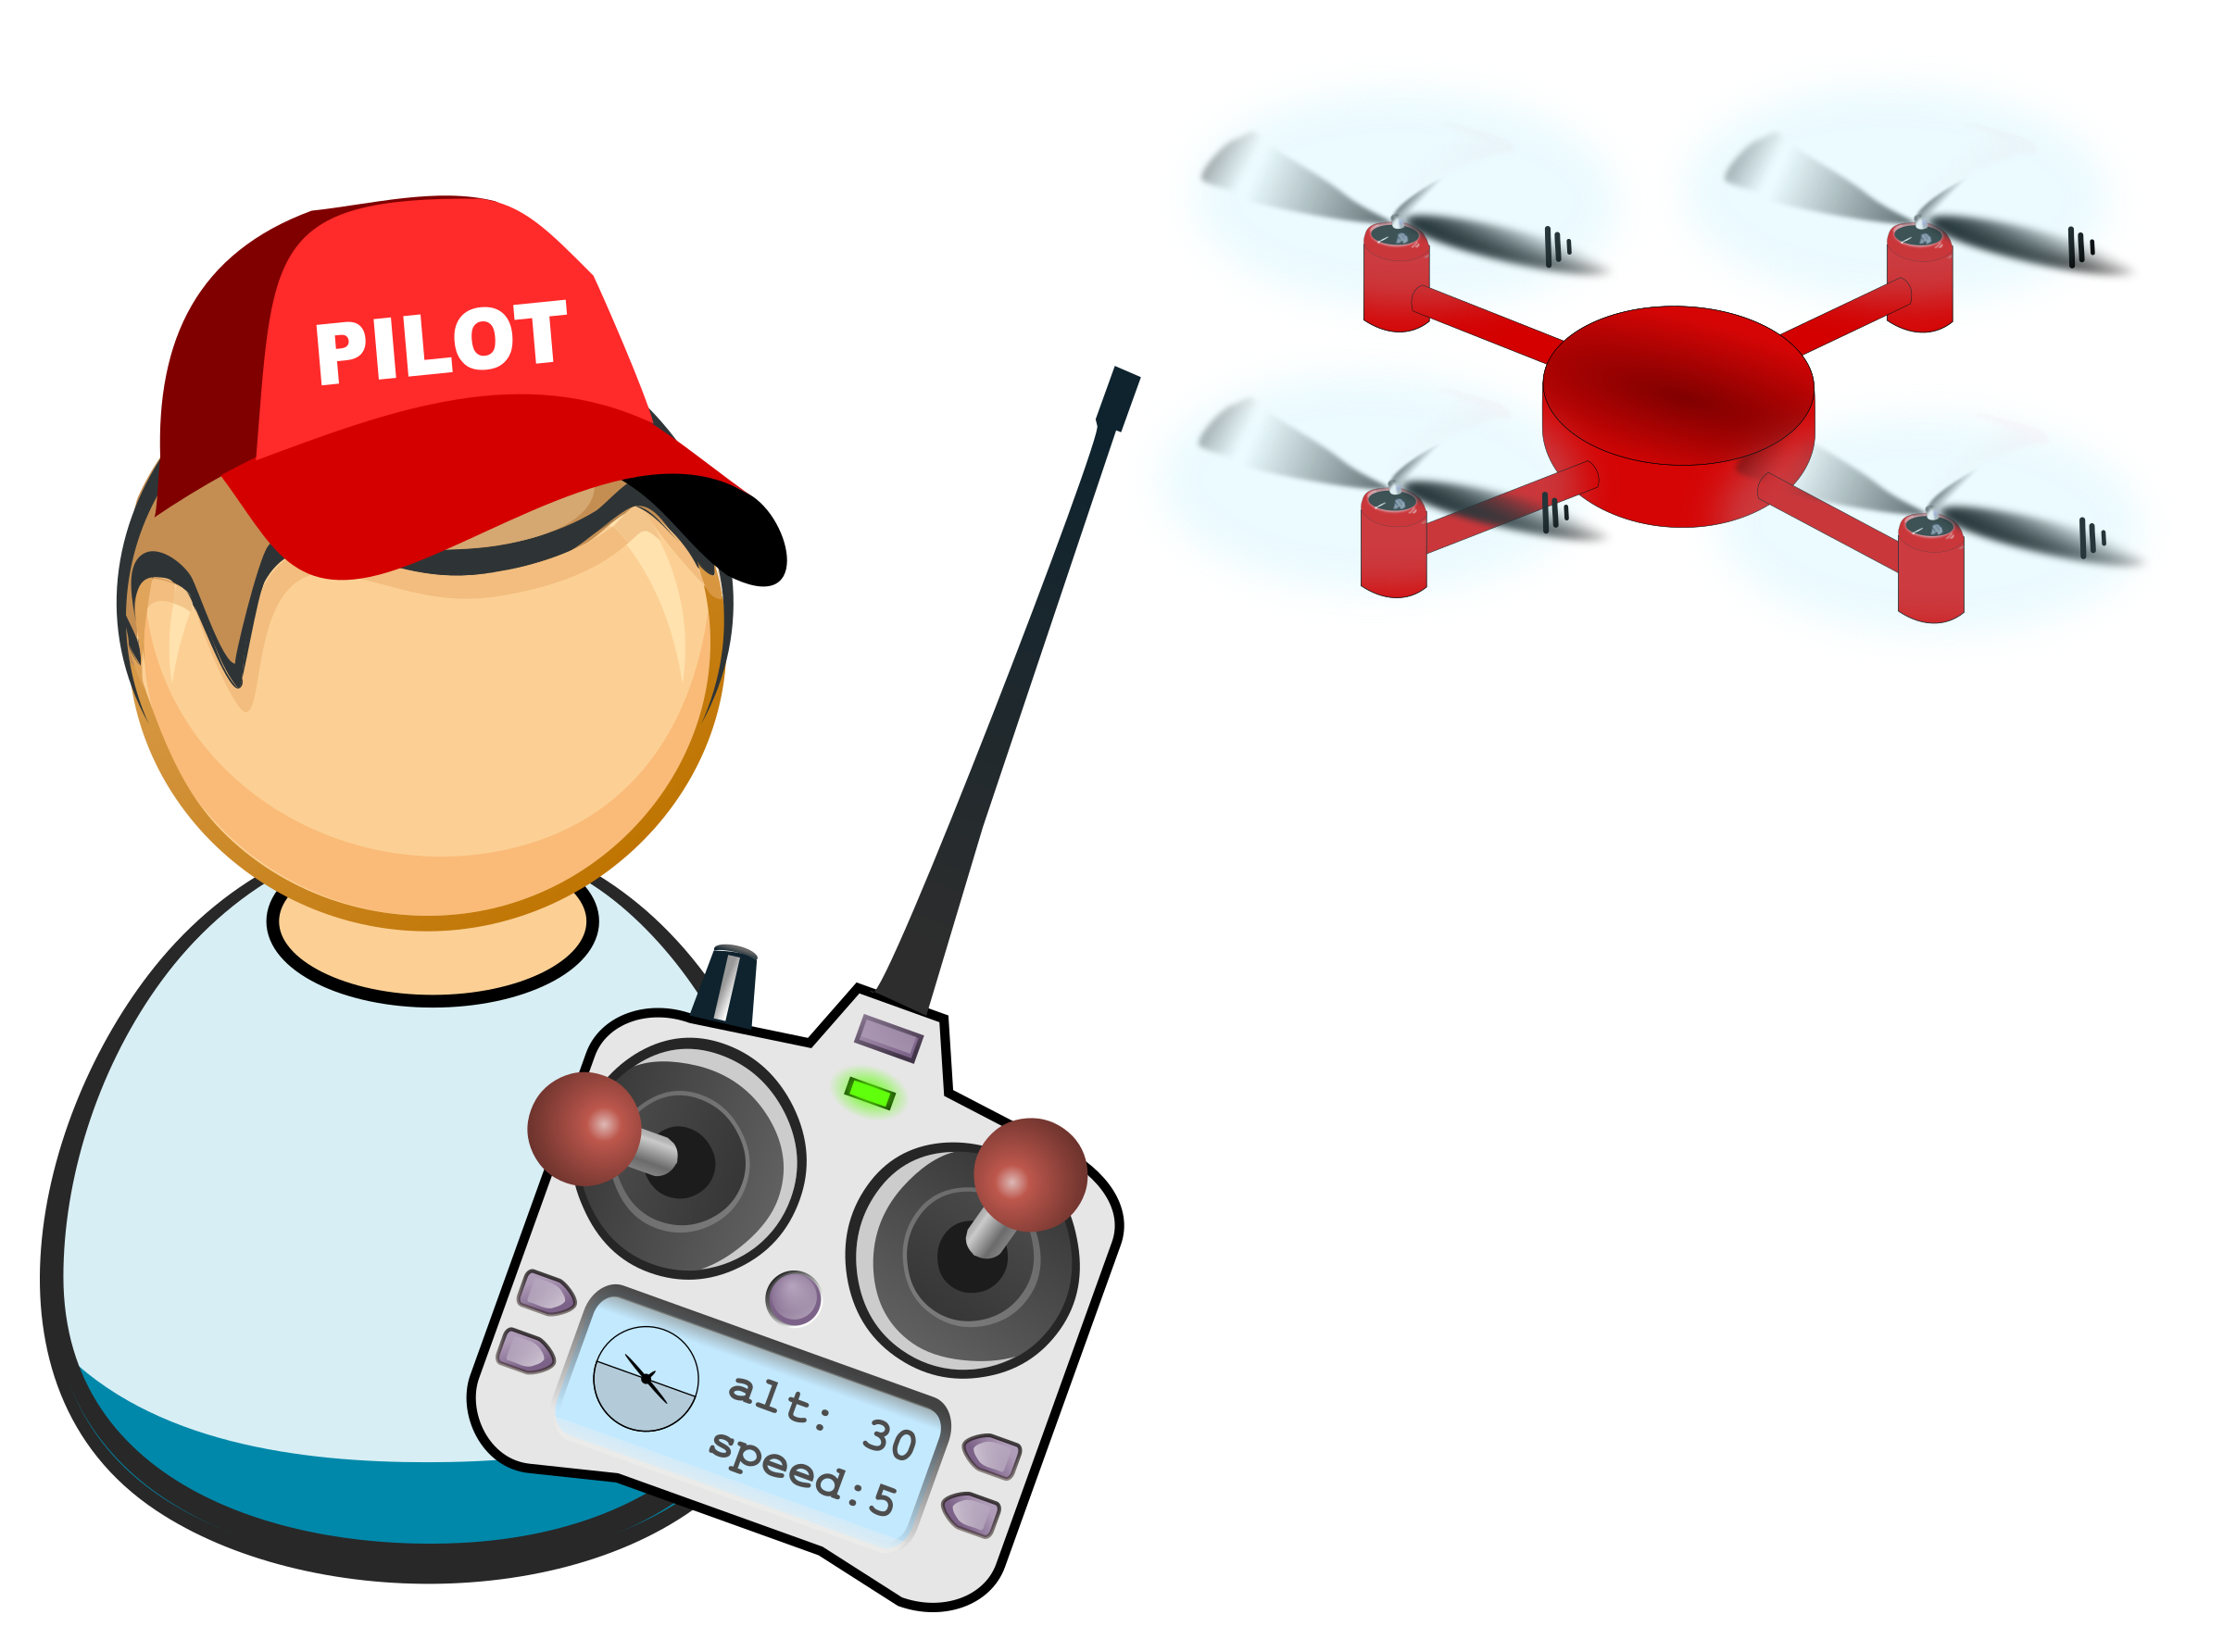 Drone clipart small, Drone small Transparent FREE for.